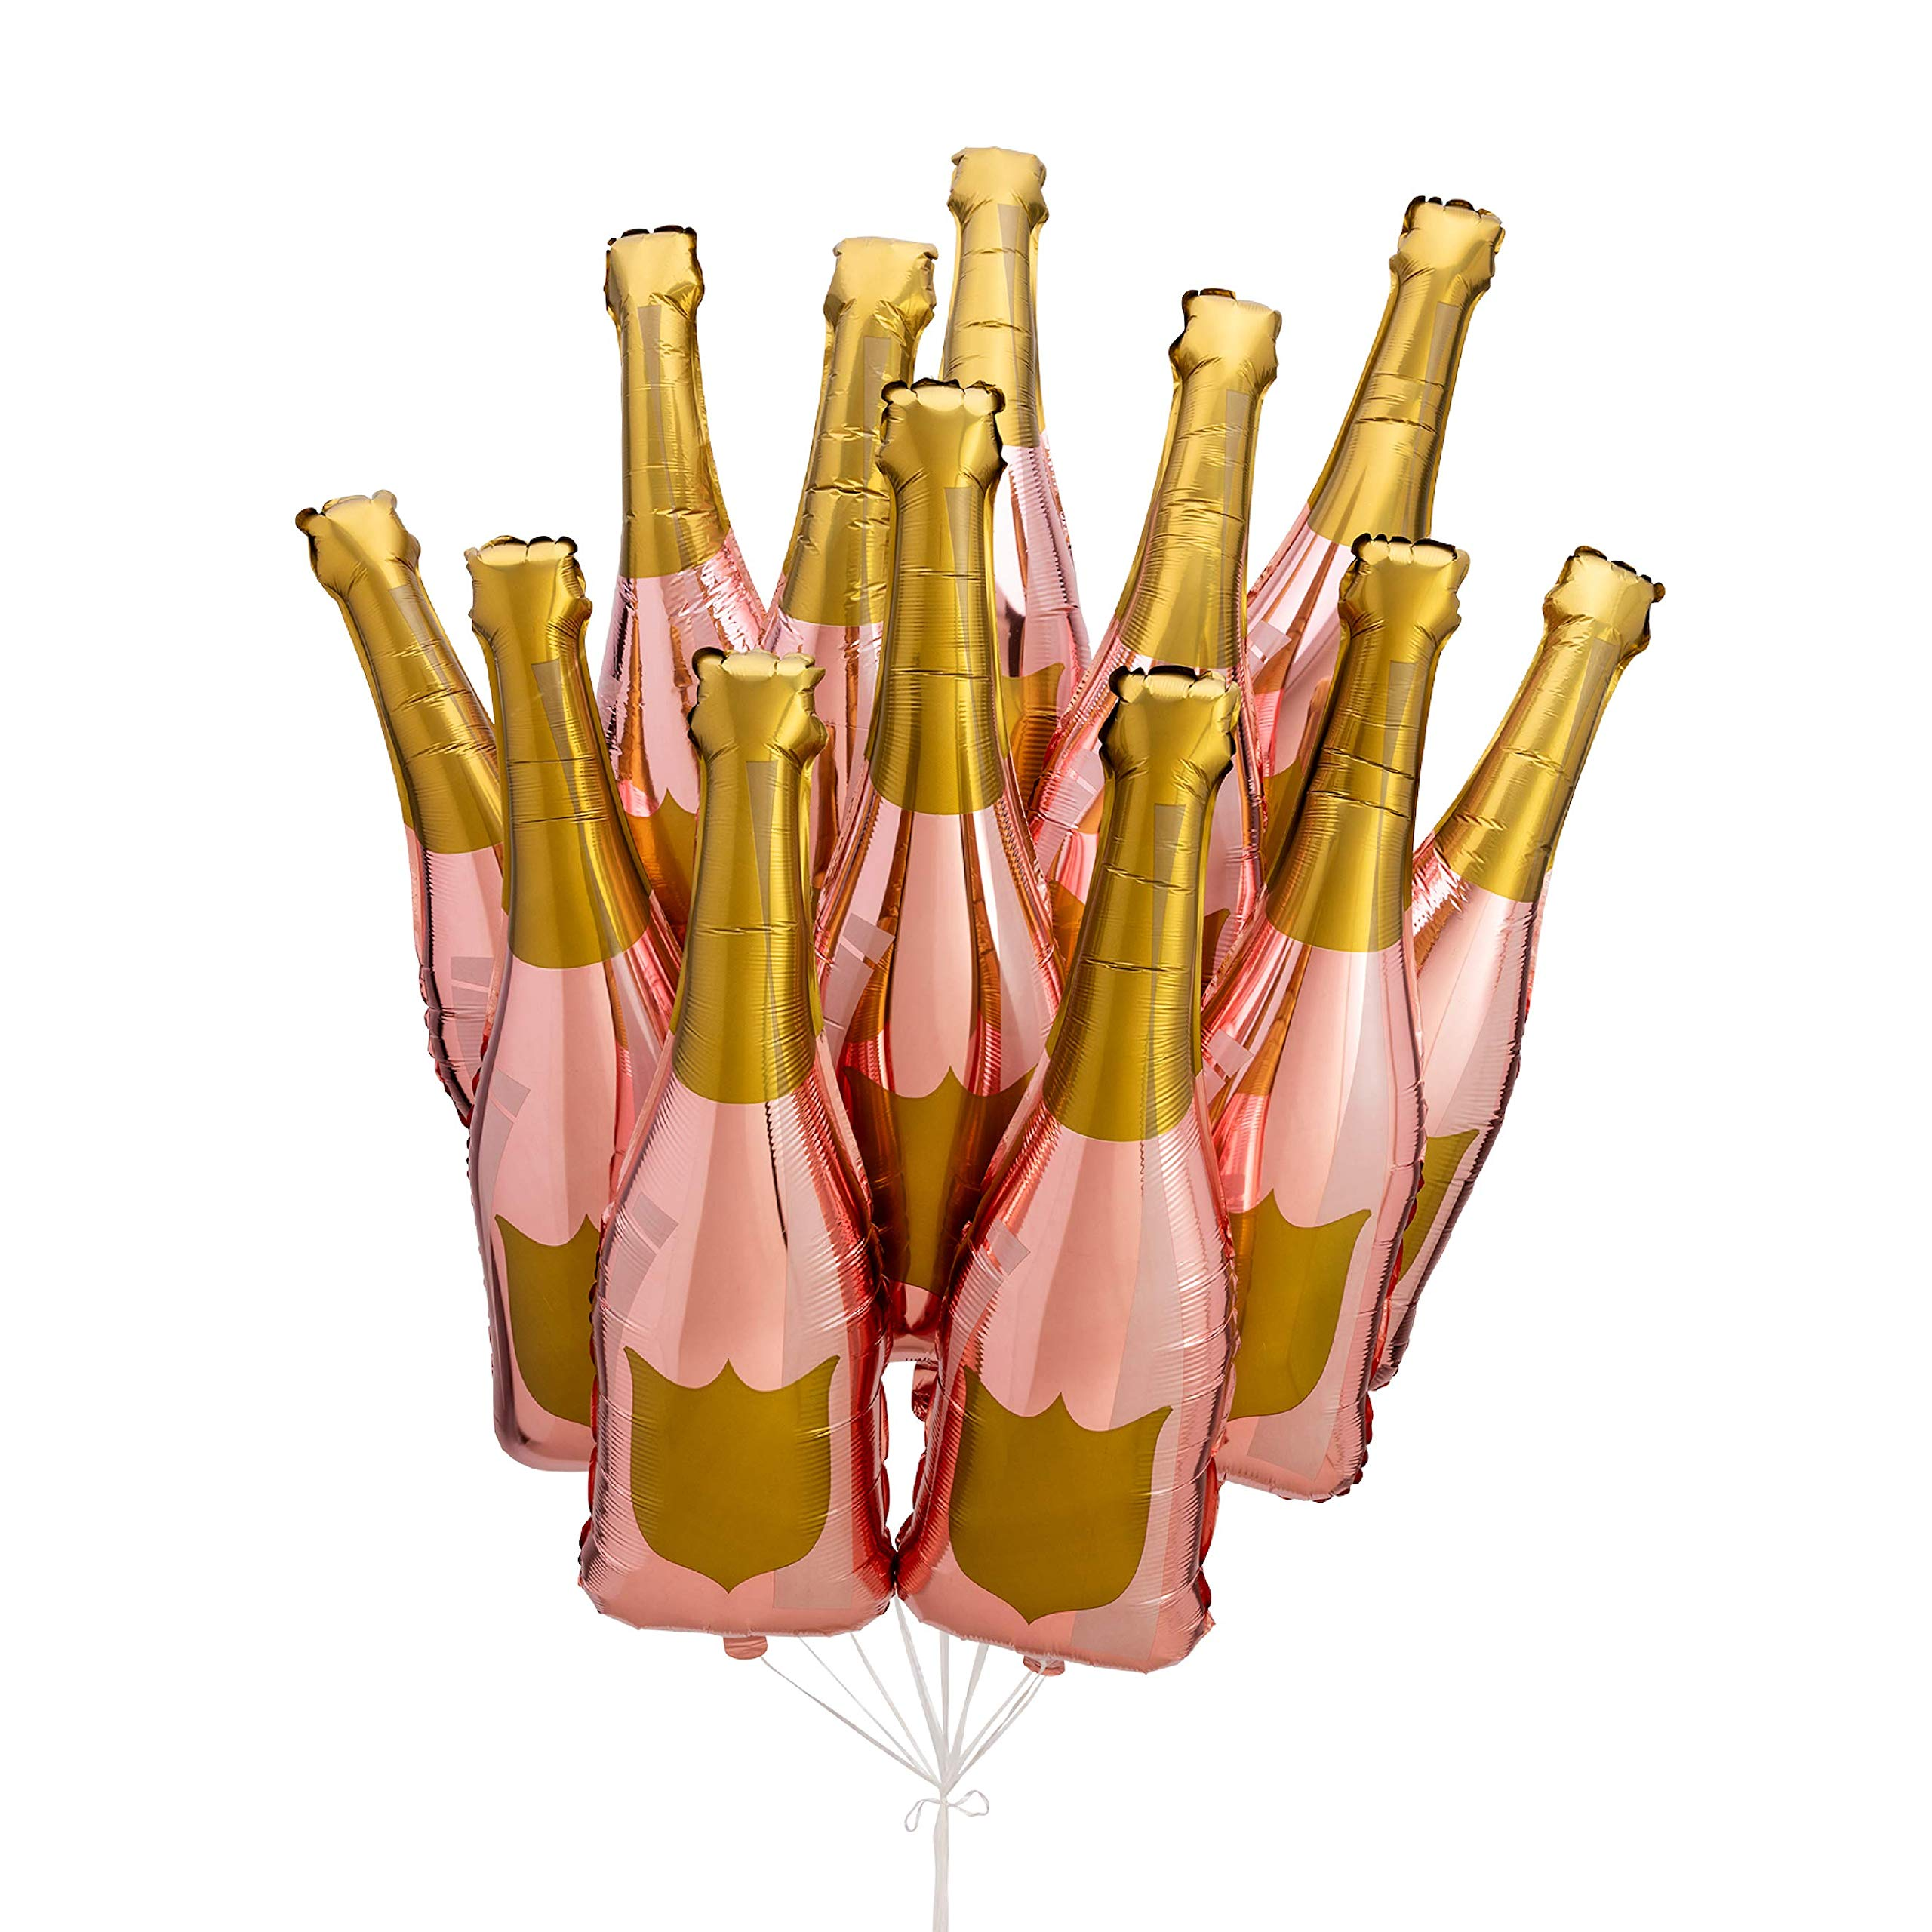 Paper Confetti Champagne Bottle Balloon, Rose Gold Party Decorations, 21st Birthday, Engagement Party Decorations, Bachelorette Party Decorations, Bridal Shower Decorations, Champagne Balloon (12)